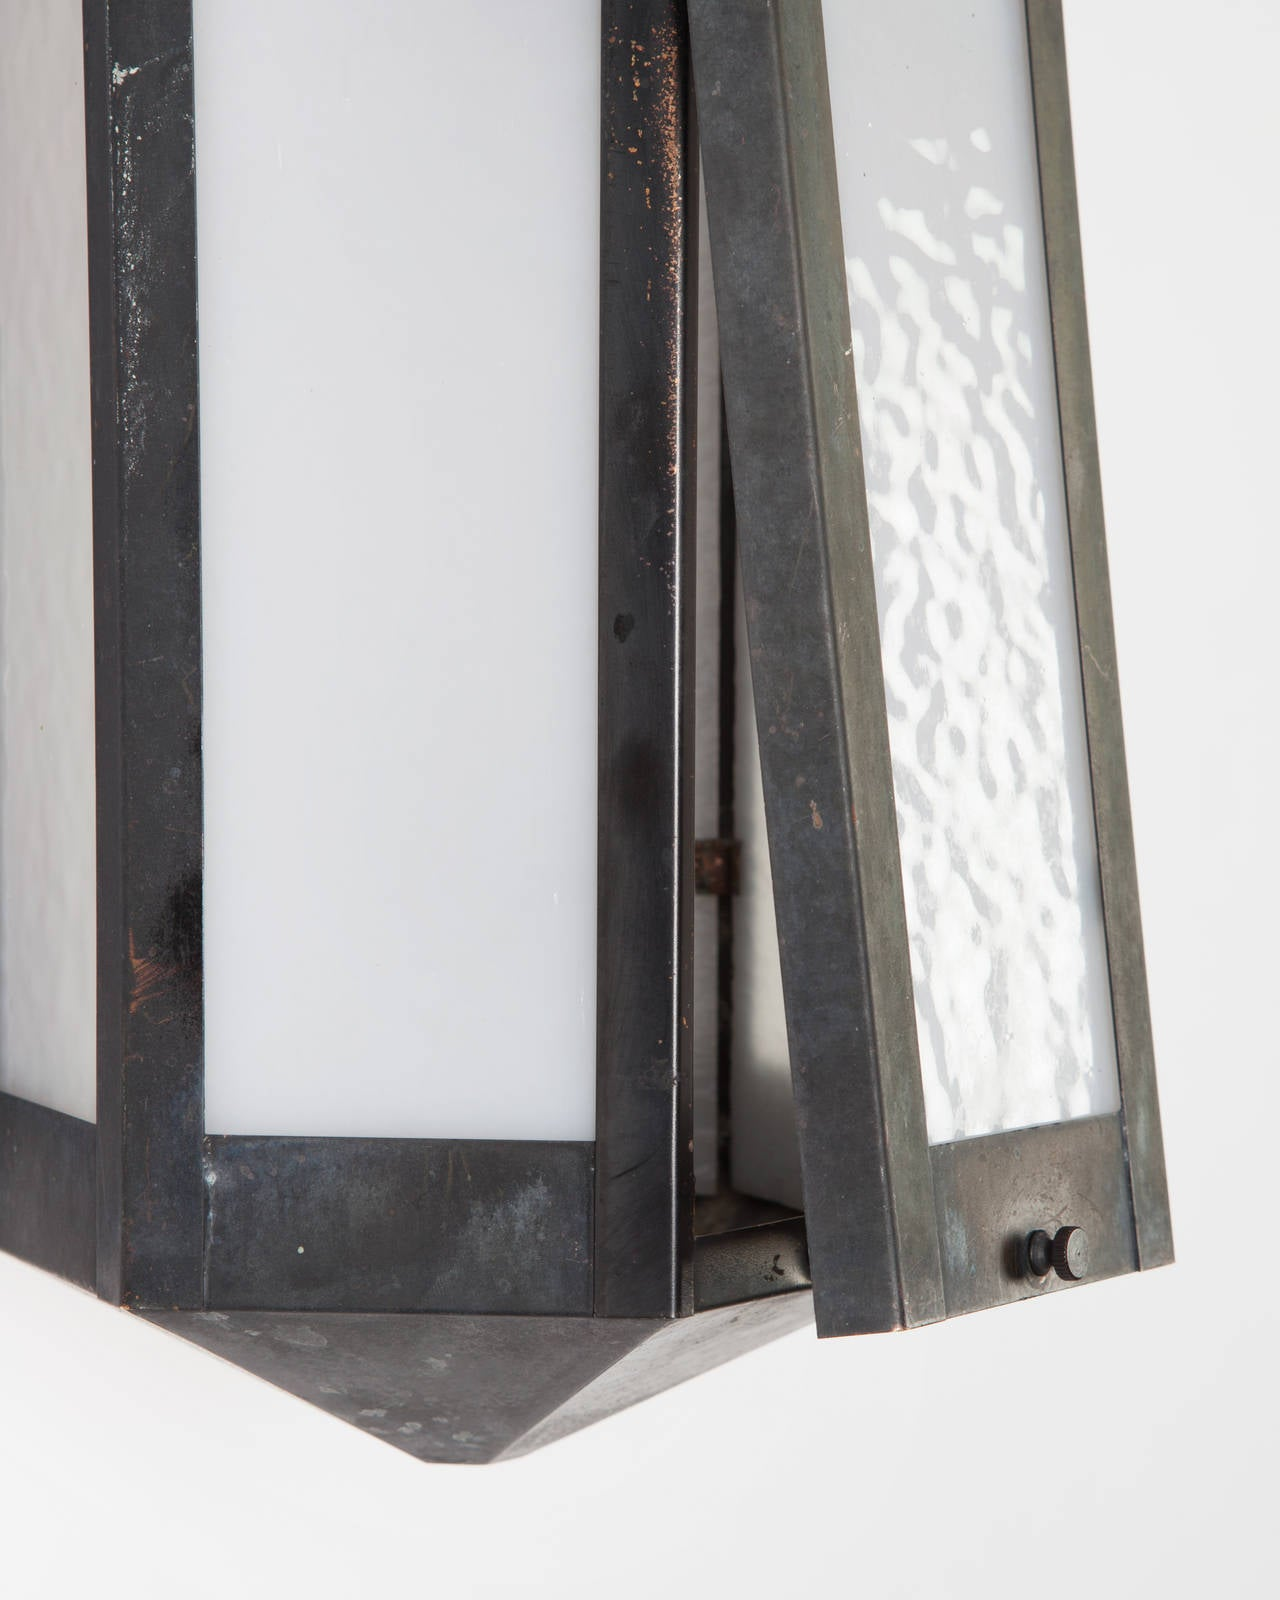 Blackened Exterior Wall Lanterns, Circa 1920 In Excellent Condition In New York, NY